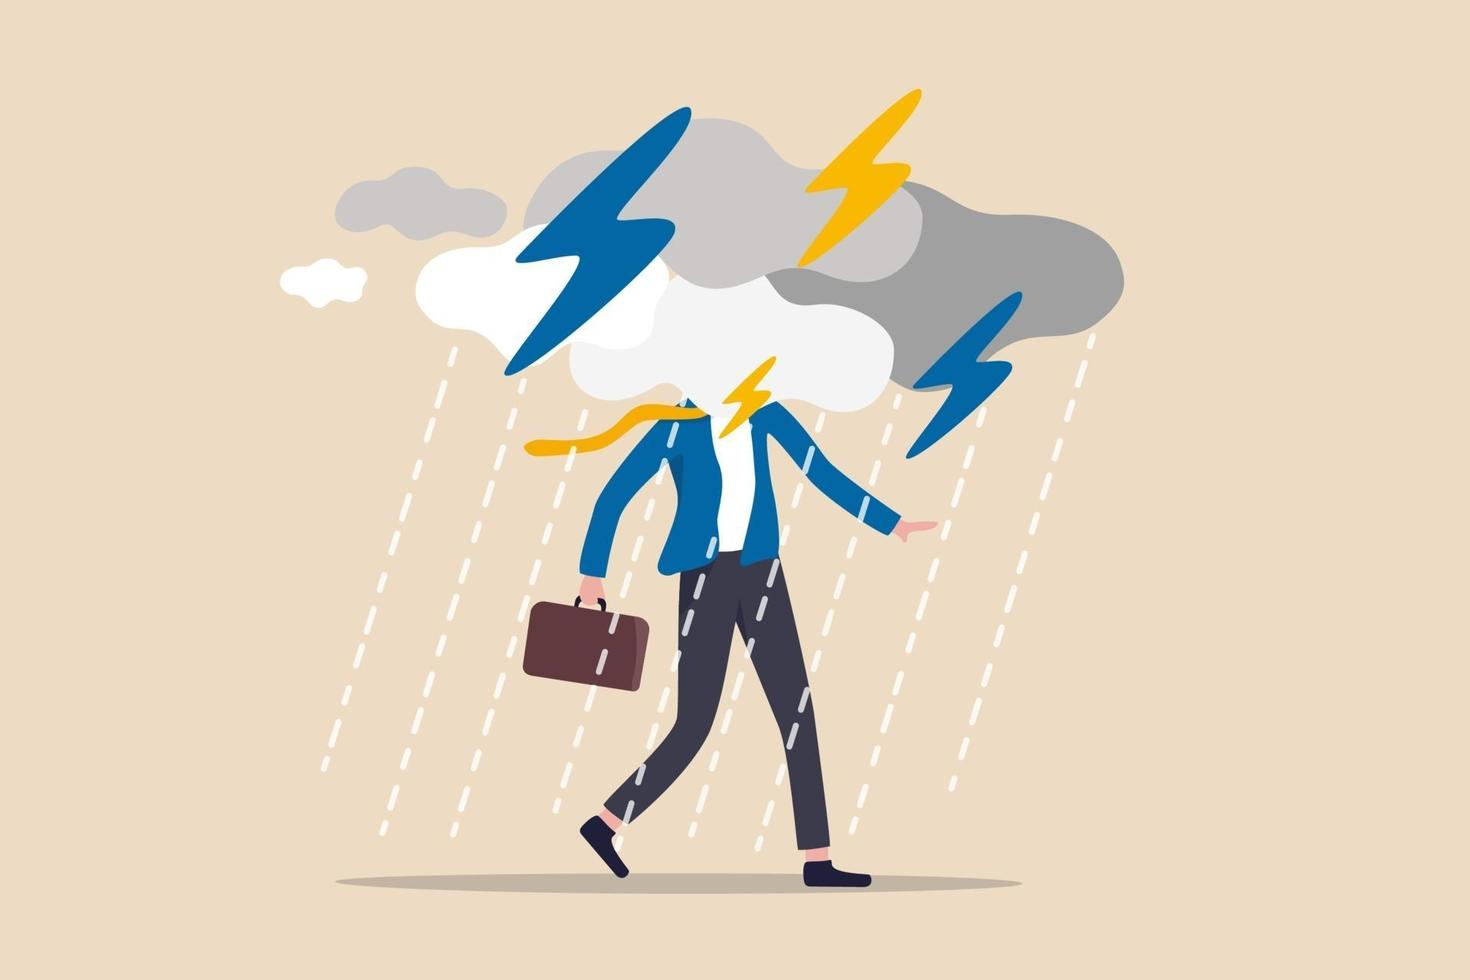 Business problem, obstacle or risk to overcome and succeed, insurance or catastrophe and disaster business day concept, depressed businessman walking with cloudy thunderstorm and rainy around his face 2167186 Vector Art at